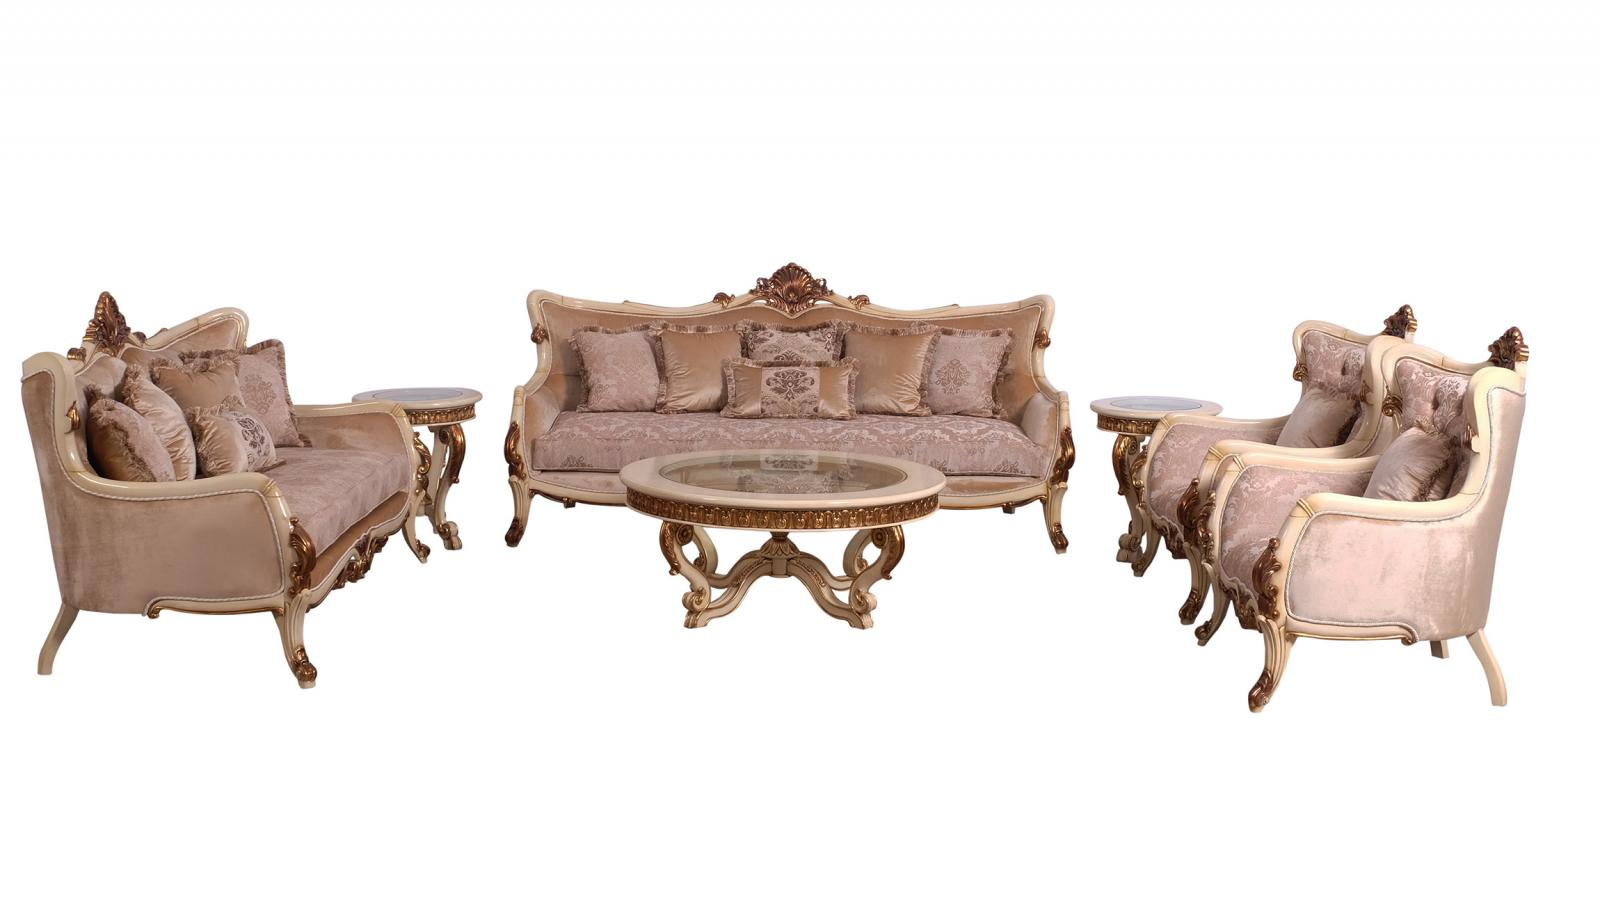 Classic  Traditional Gold  Antique   Beige Wood  Solid Hardwood and Fabric Sofa Set EUROPEAN FURNITURE 47075-S-Set-4